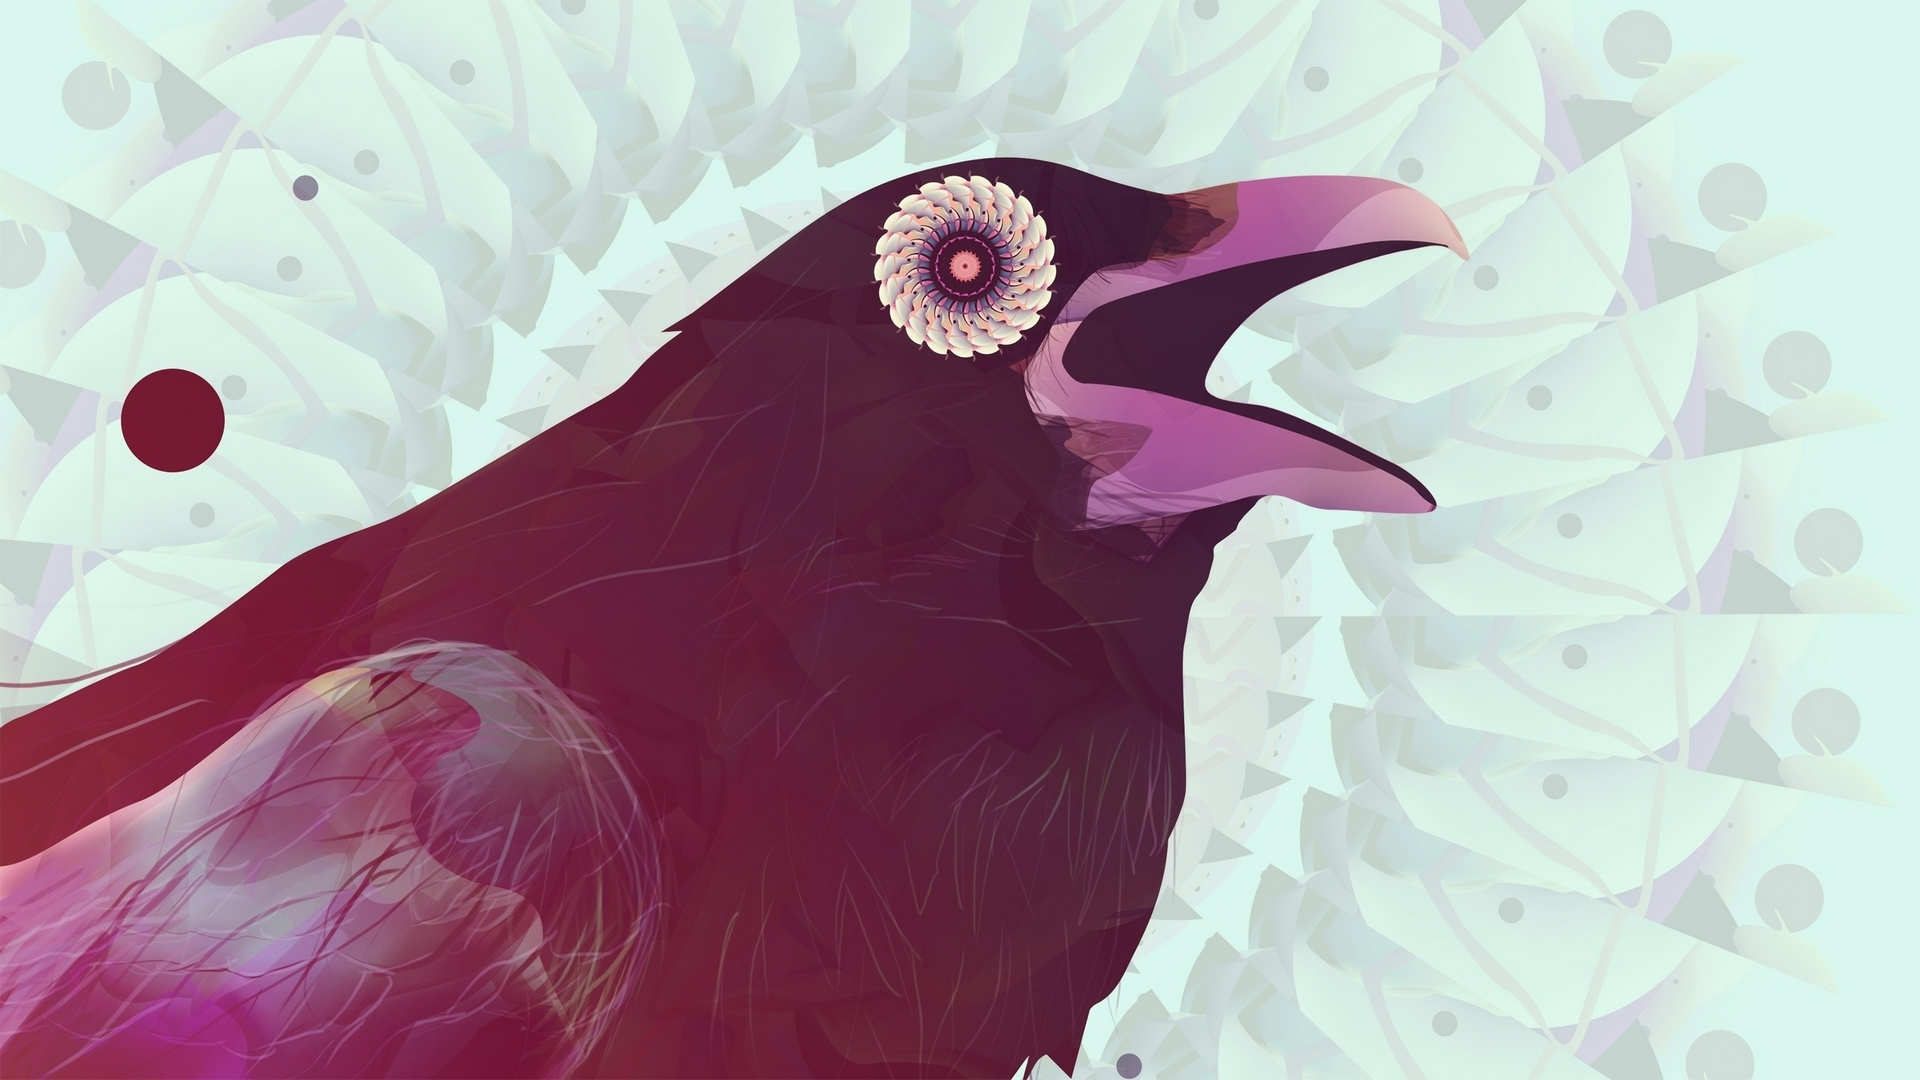 40 Raven Hd Wallpapers Backgrounds Wallpaper Abyss